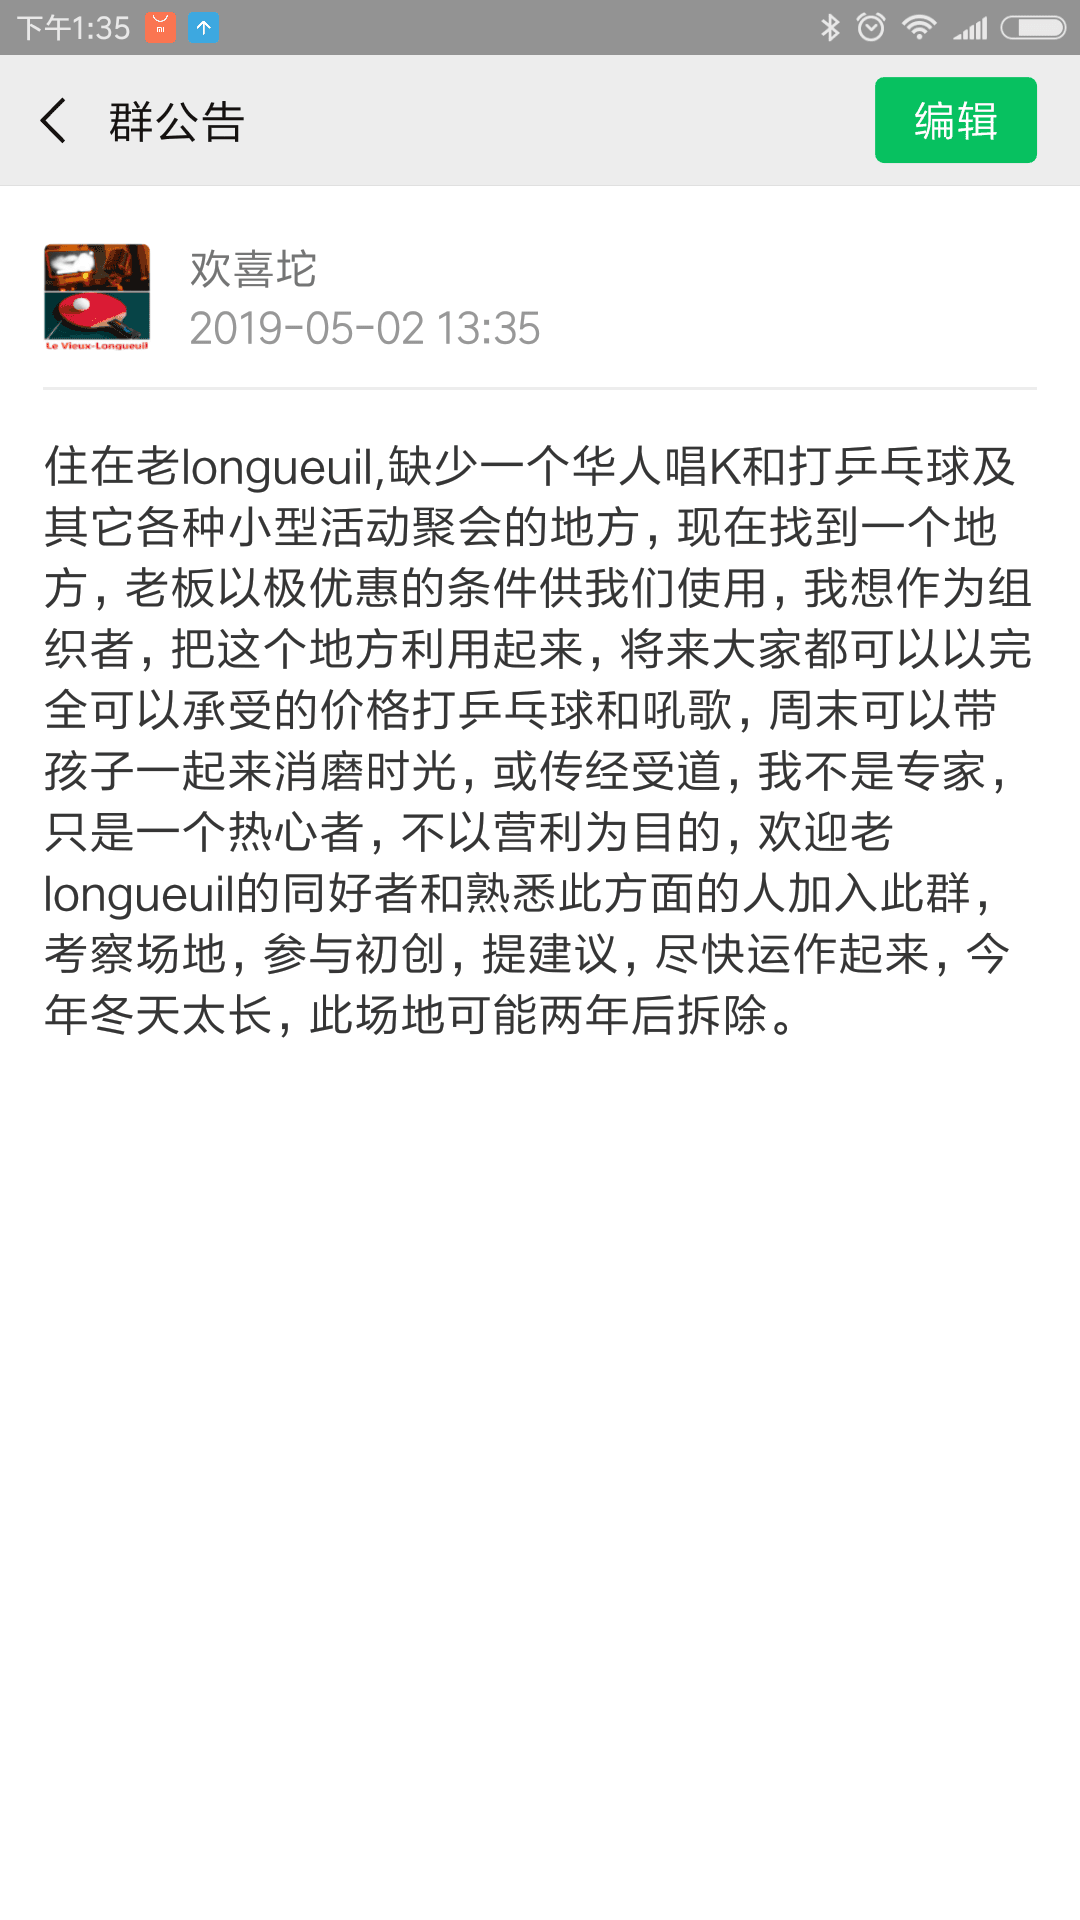 Screenshot_2019-05-02-13-35-30-673_com.tencent.mm.png